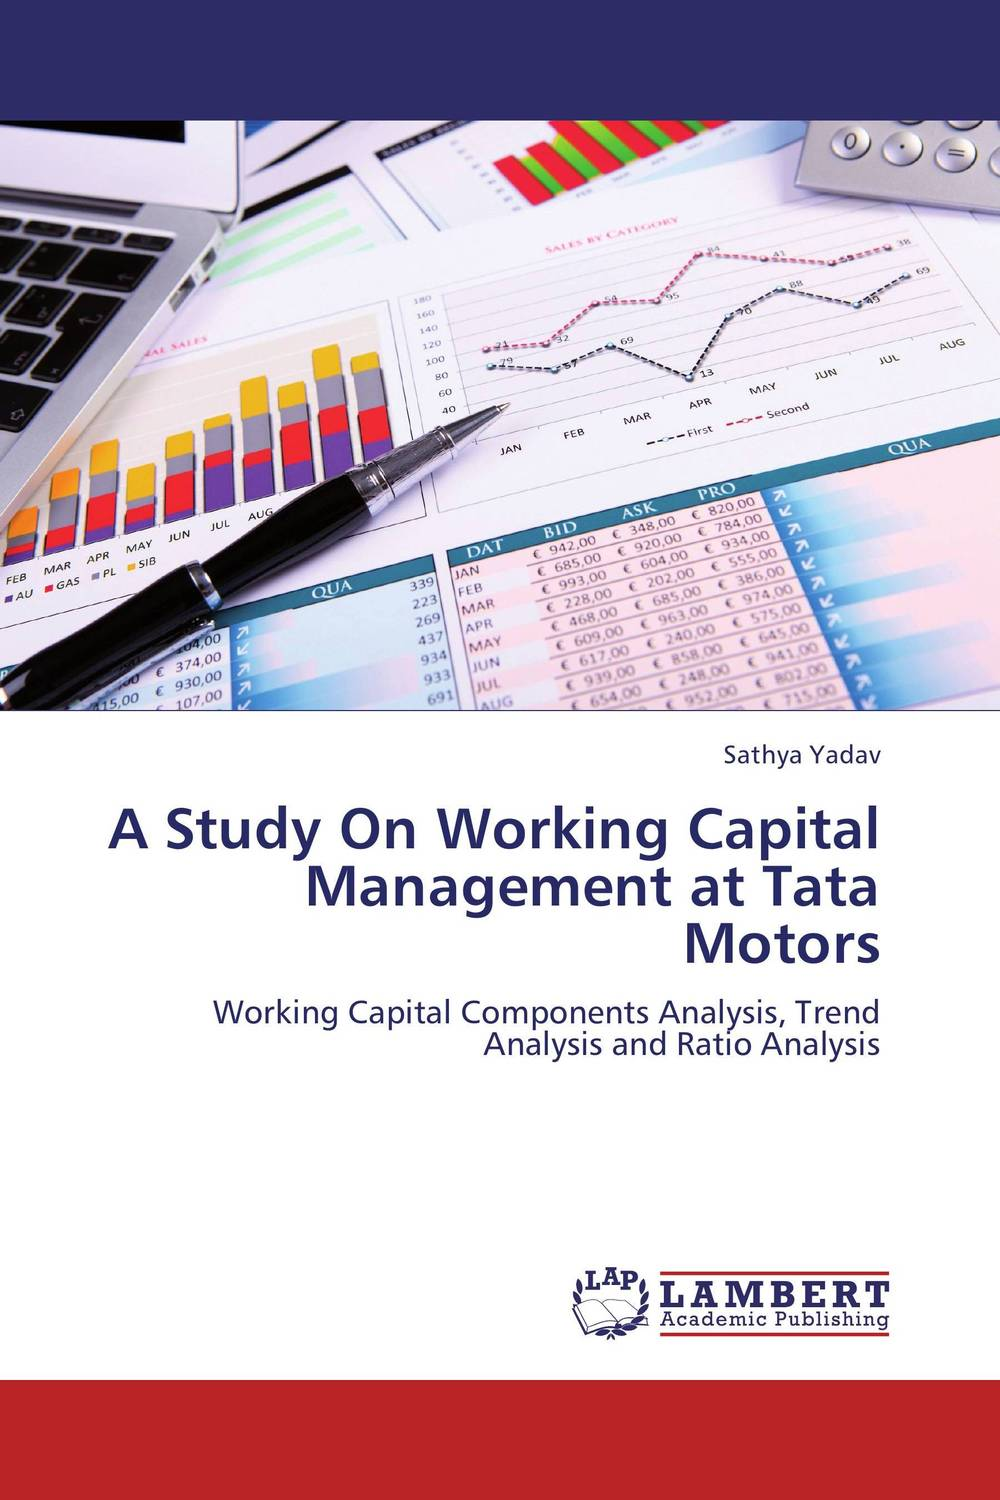 A Study On Working Capital Management at Tata Motors james sagner working capital management applications and case studies